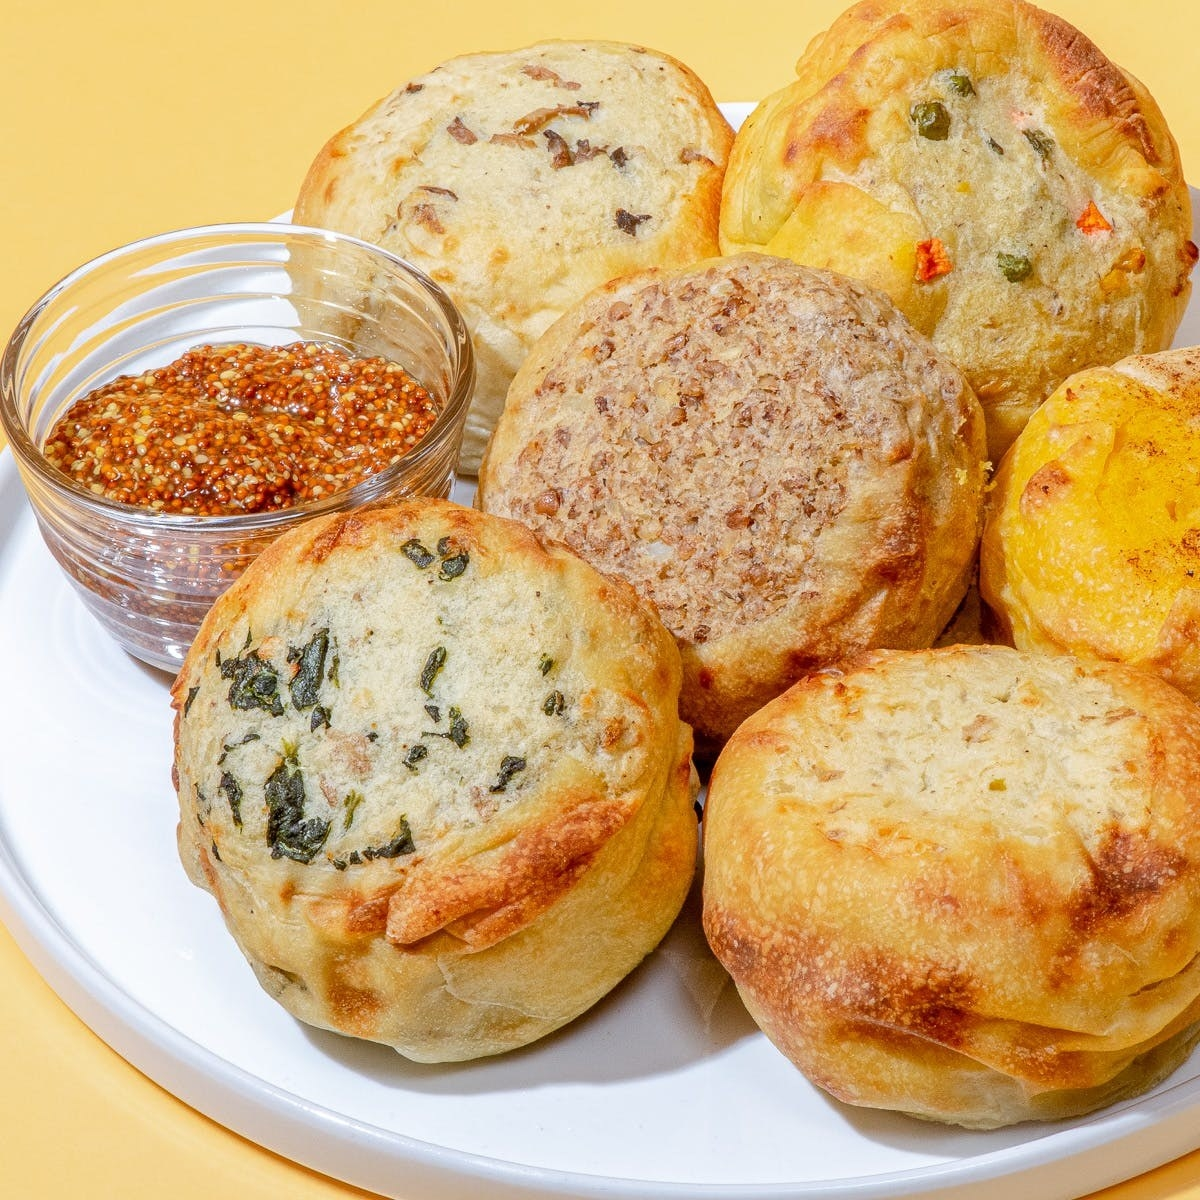 An assortment of different knishes filled with ingredients like spinach, apple, and potato from Yonah Schimmel.